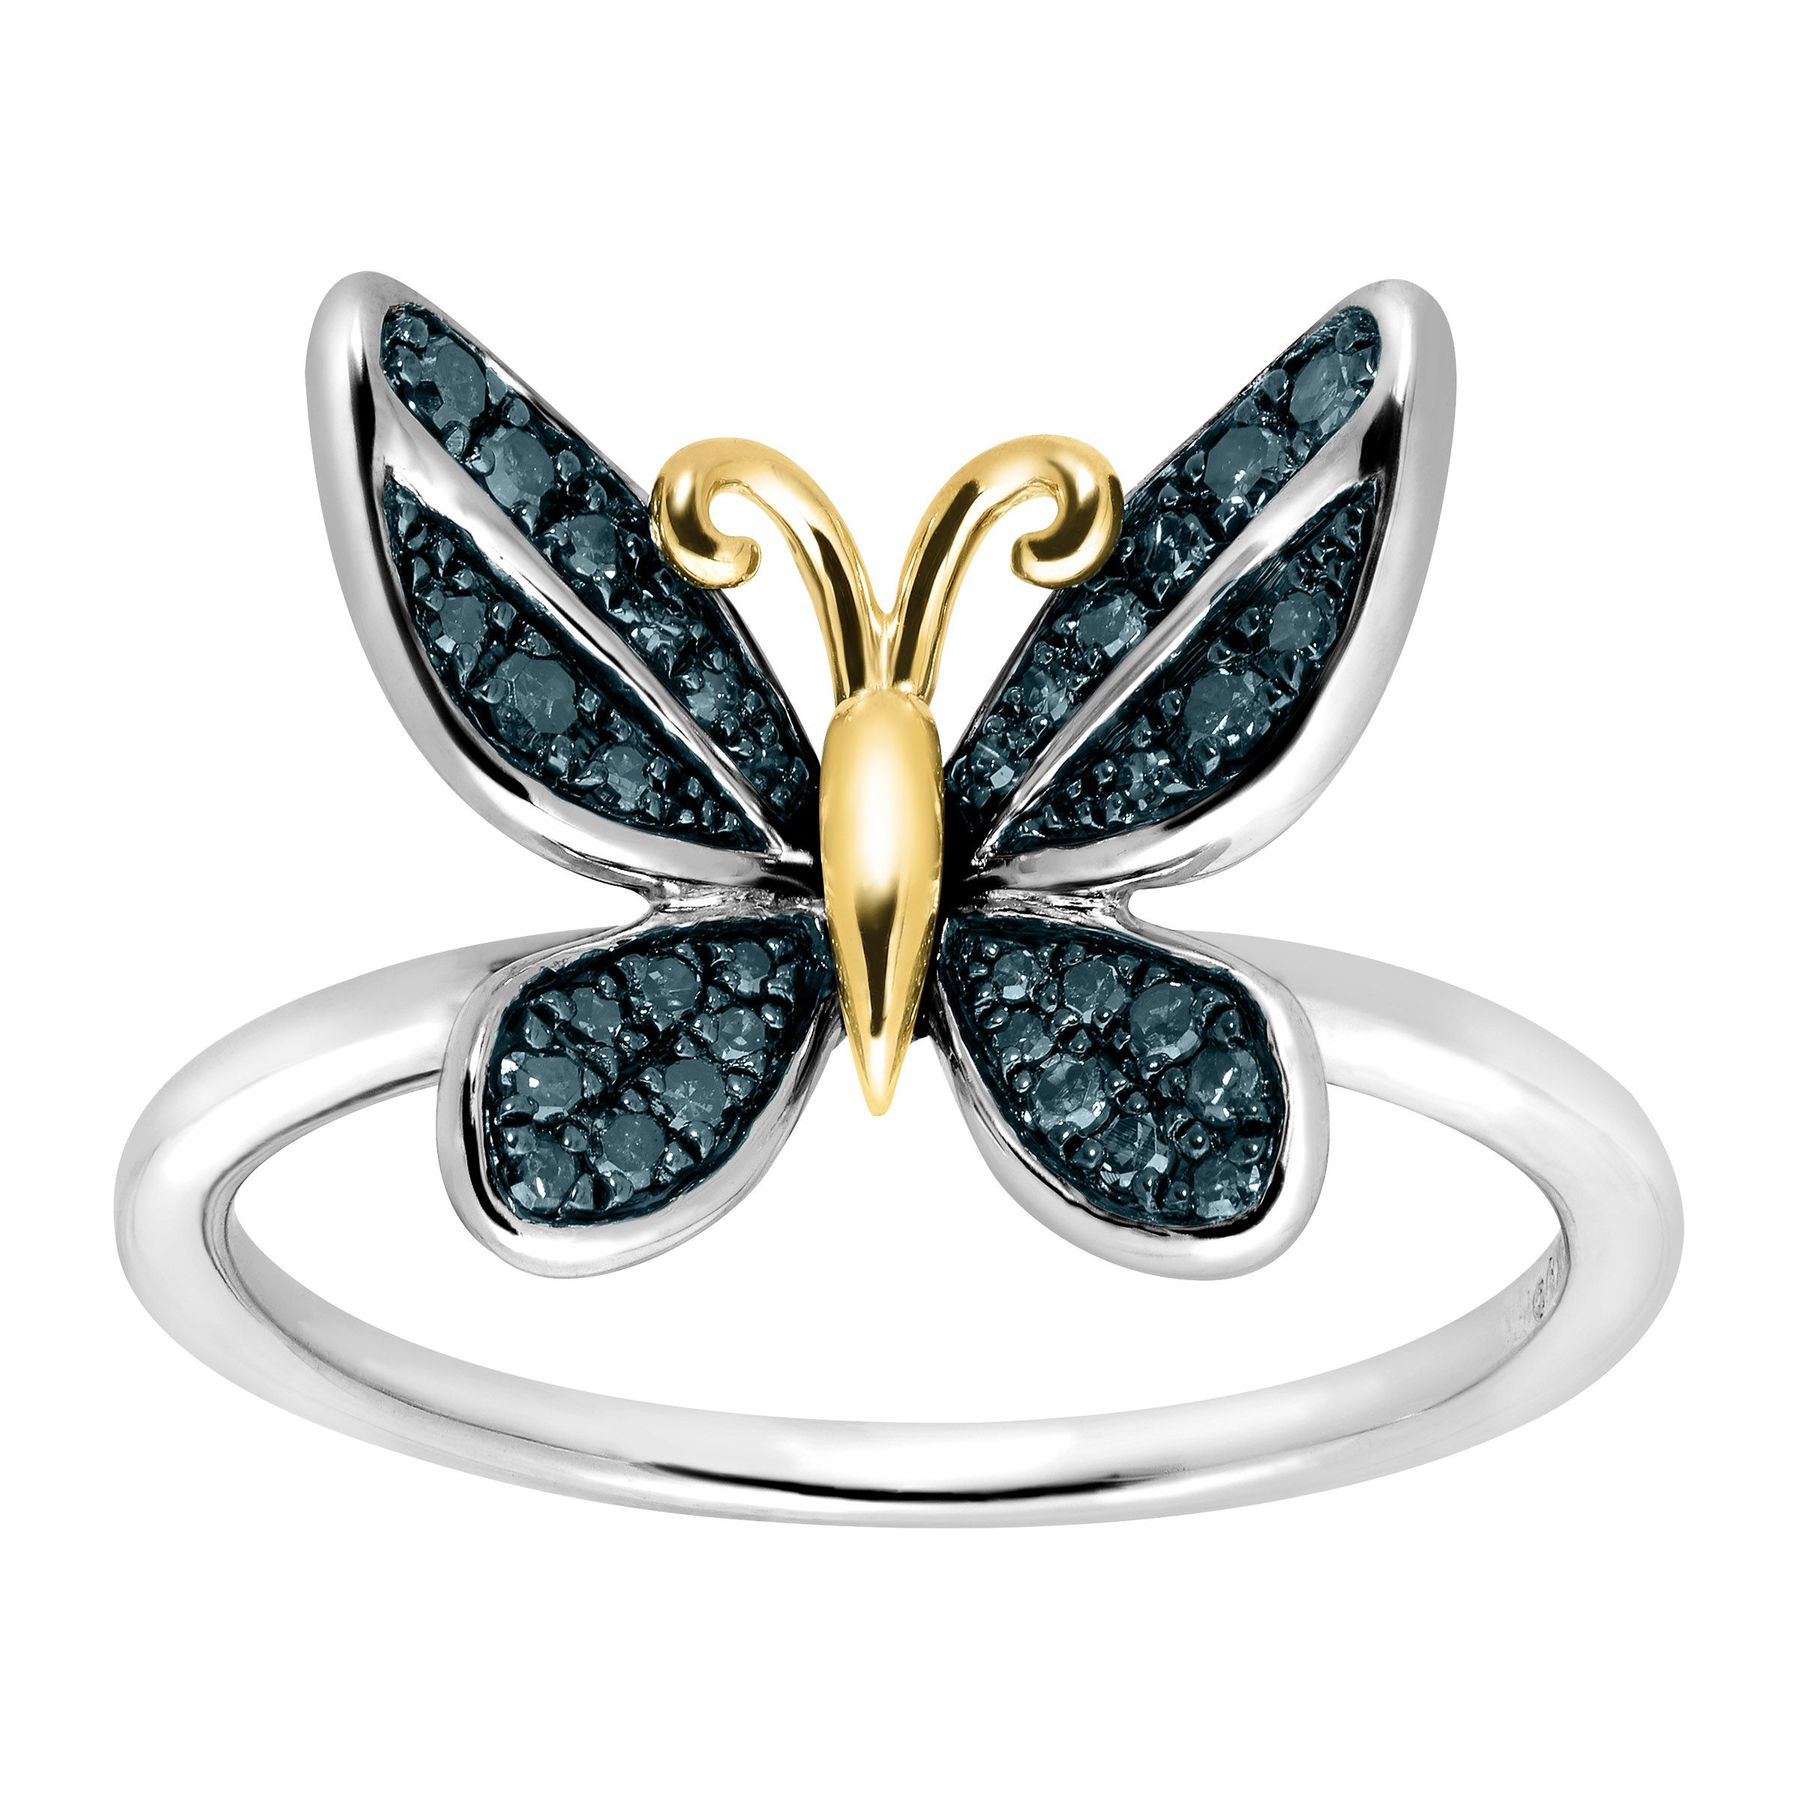 products glr main white regent motif diamond jewelers butterfly ring gold karat